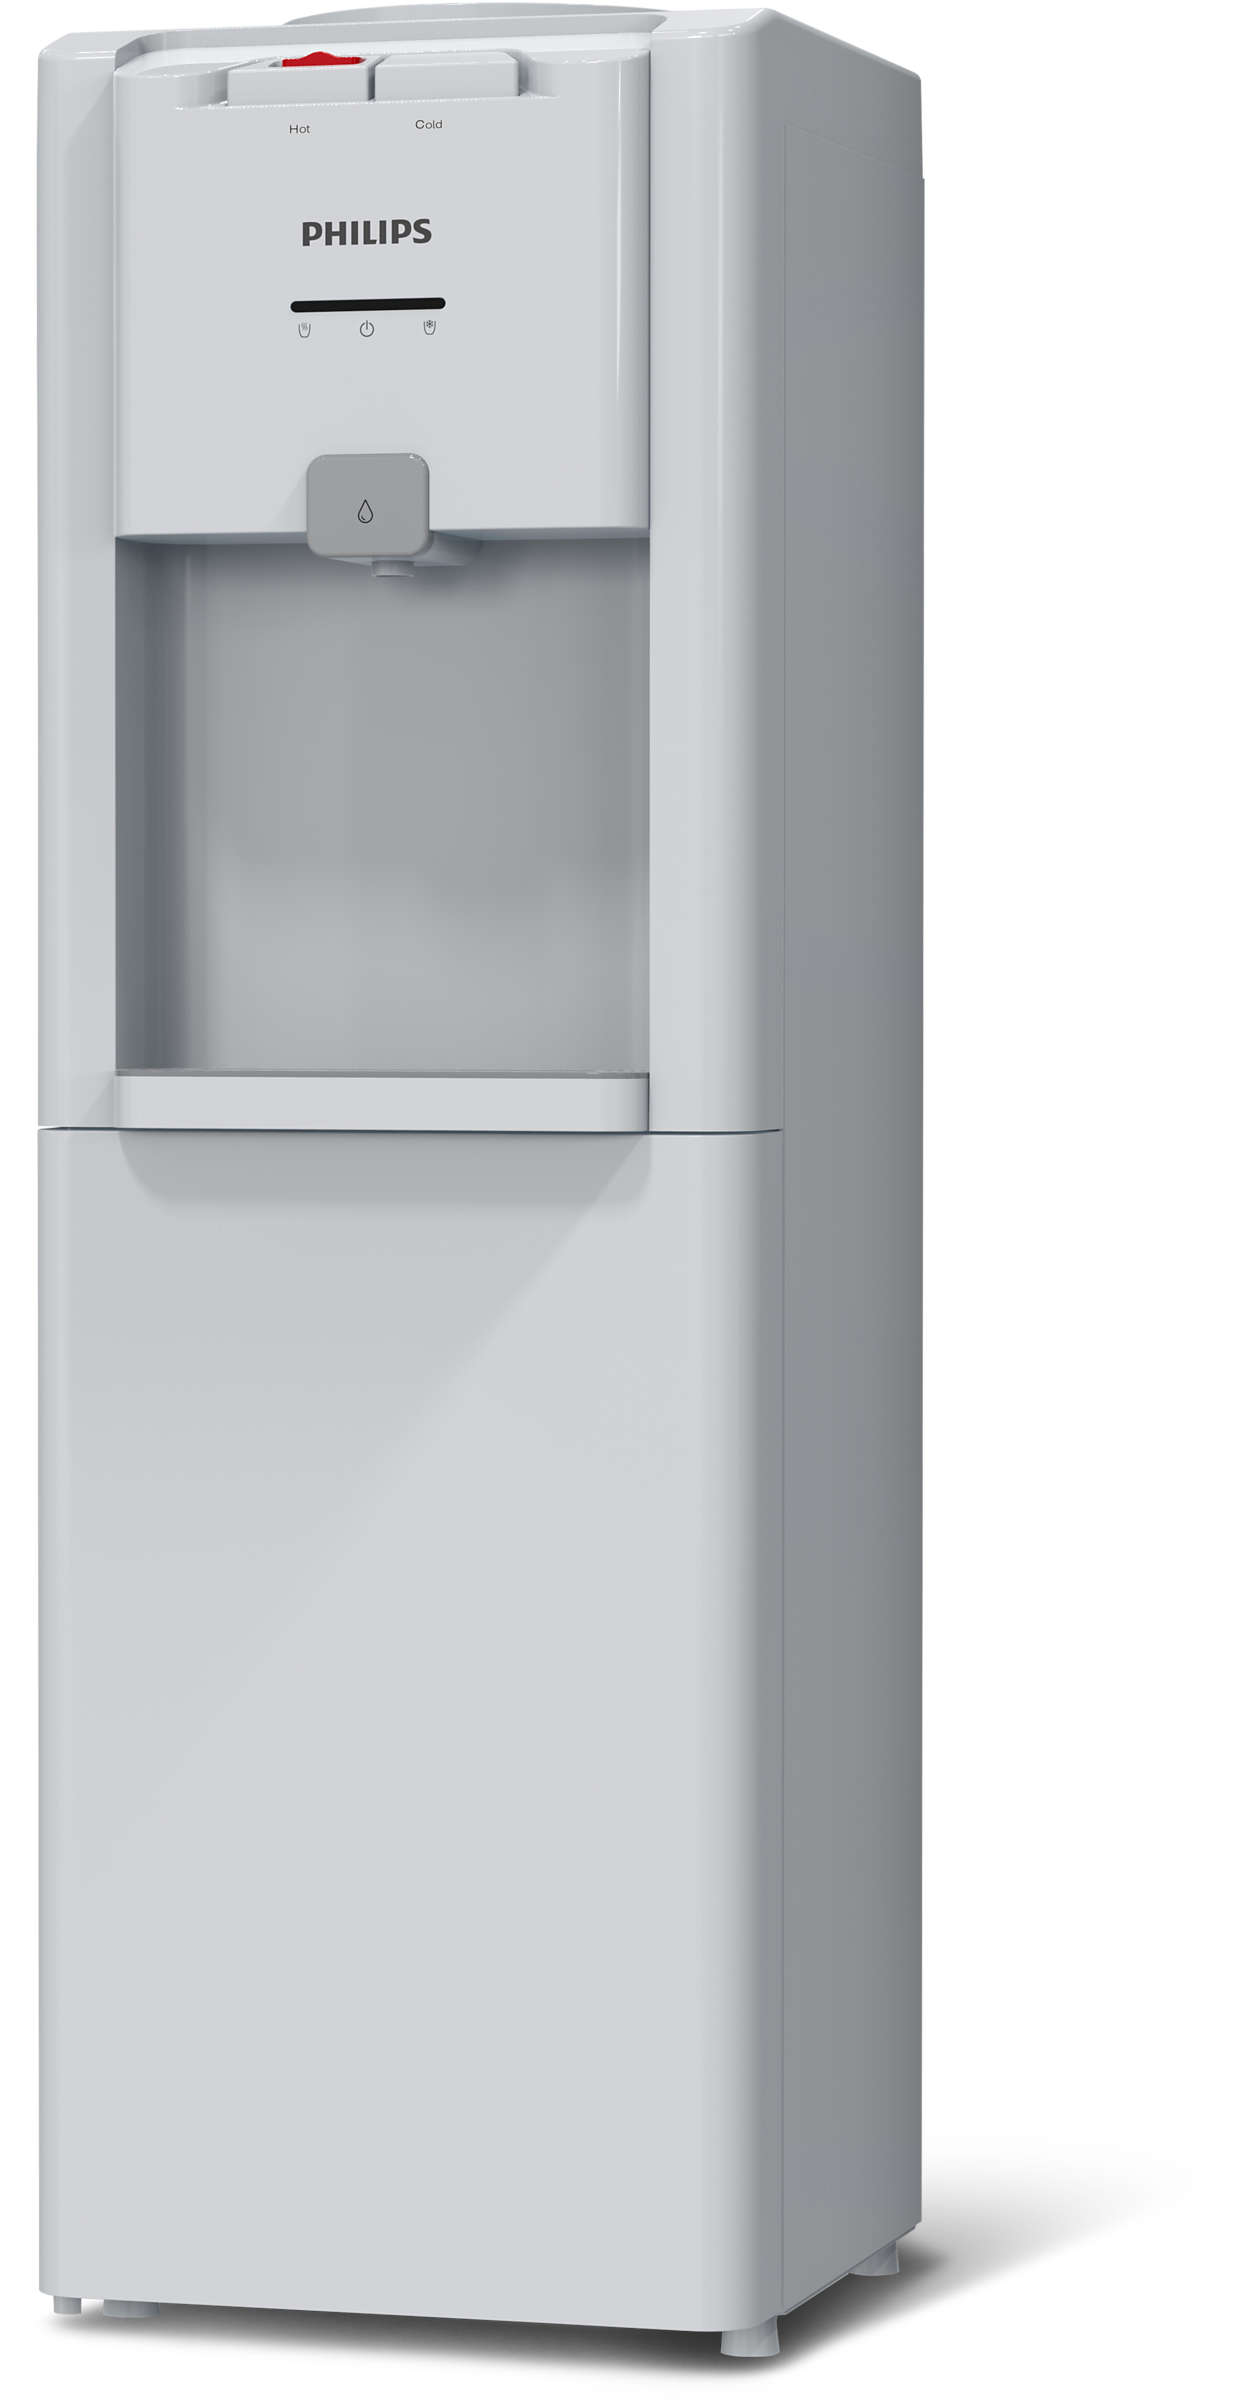 Cold and hot water made easy